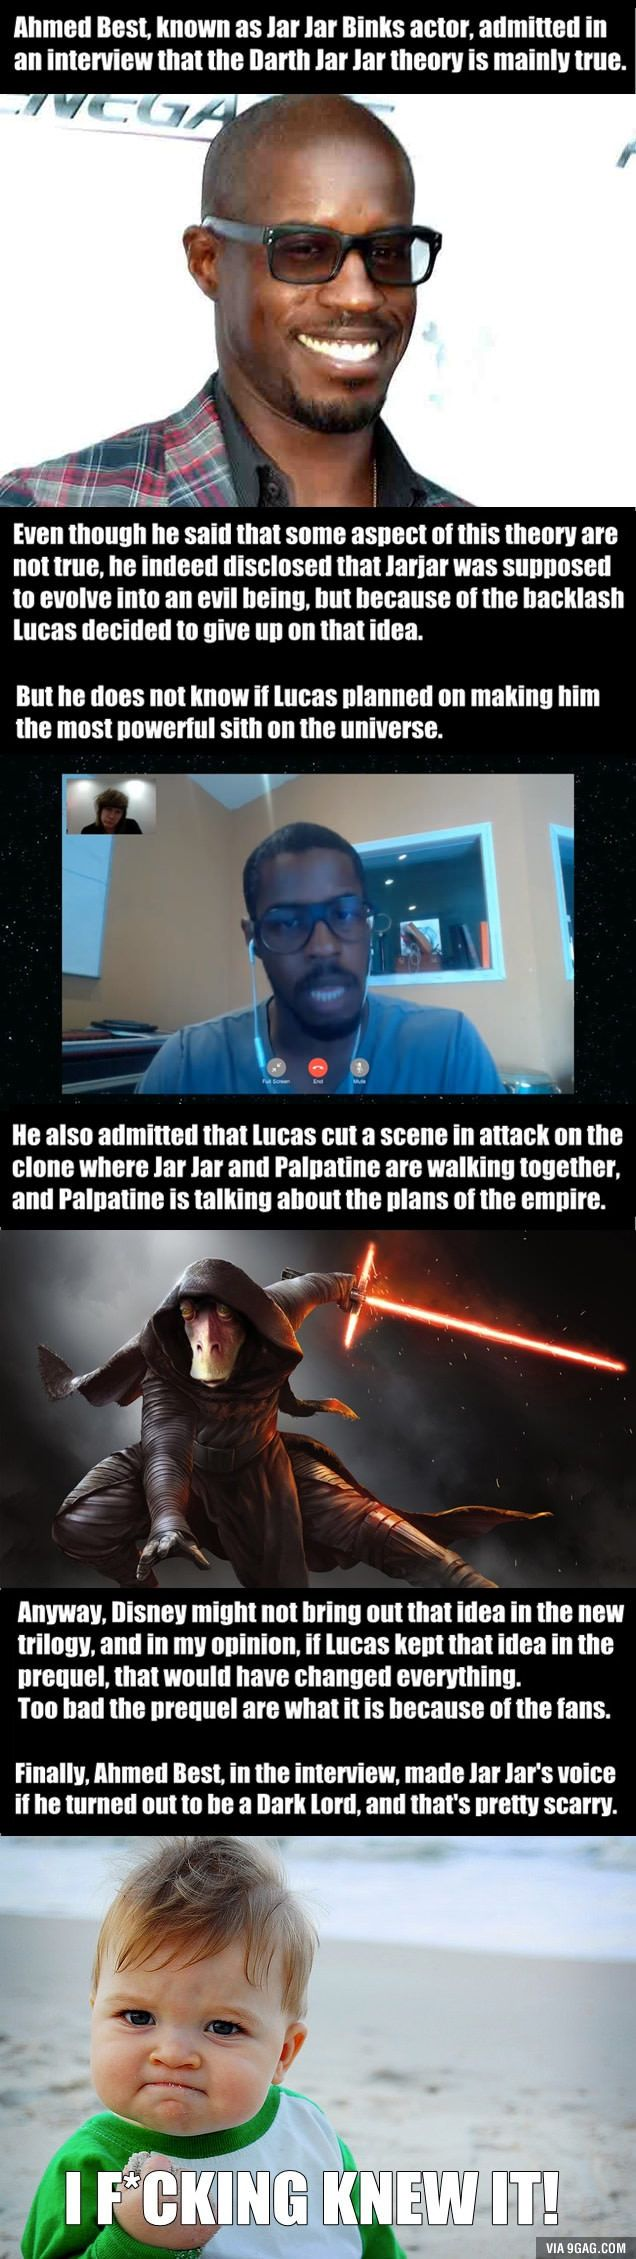 Ahmed Best (Jar Jar Binks) admitted that the Darth Jar Jar theory is mainly true! - 9GAG